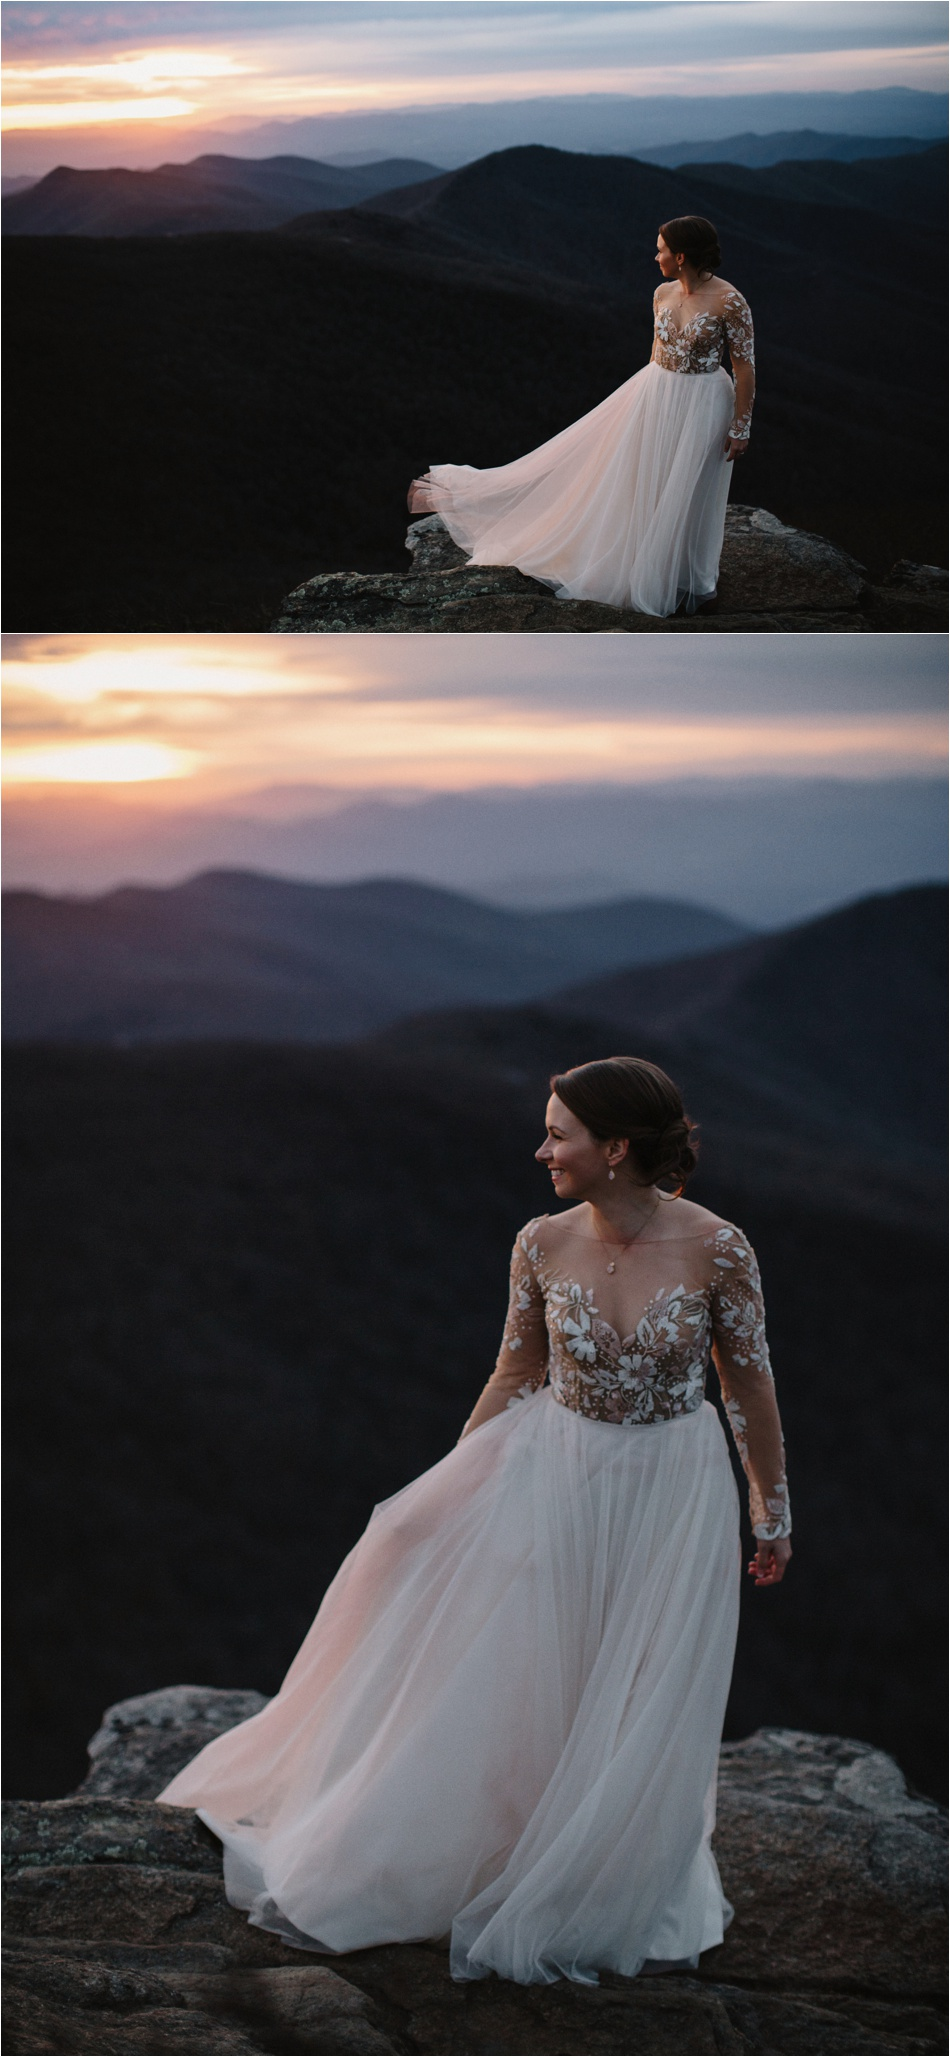 craggy-asheville-elopement-michelle-carl68.jpg